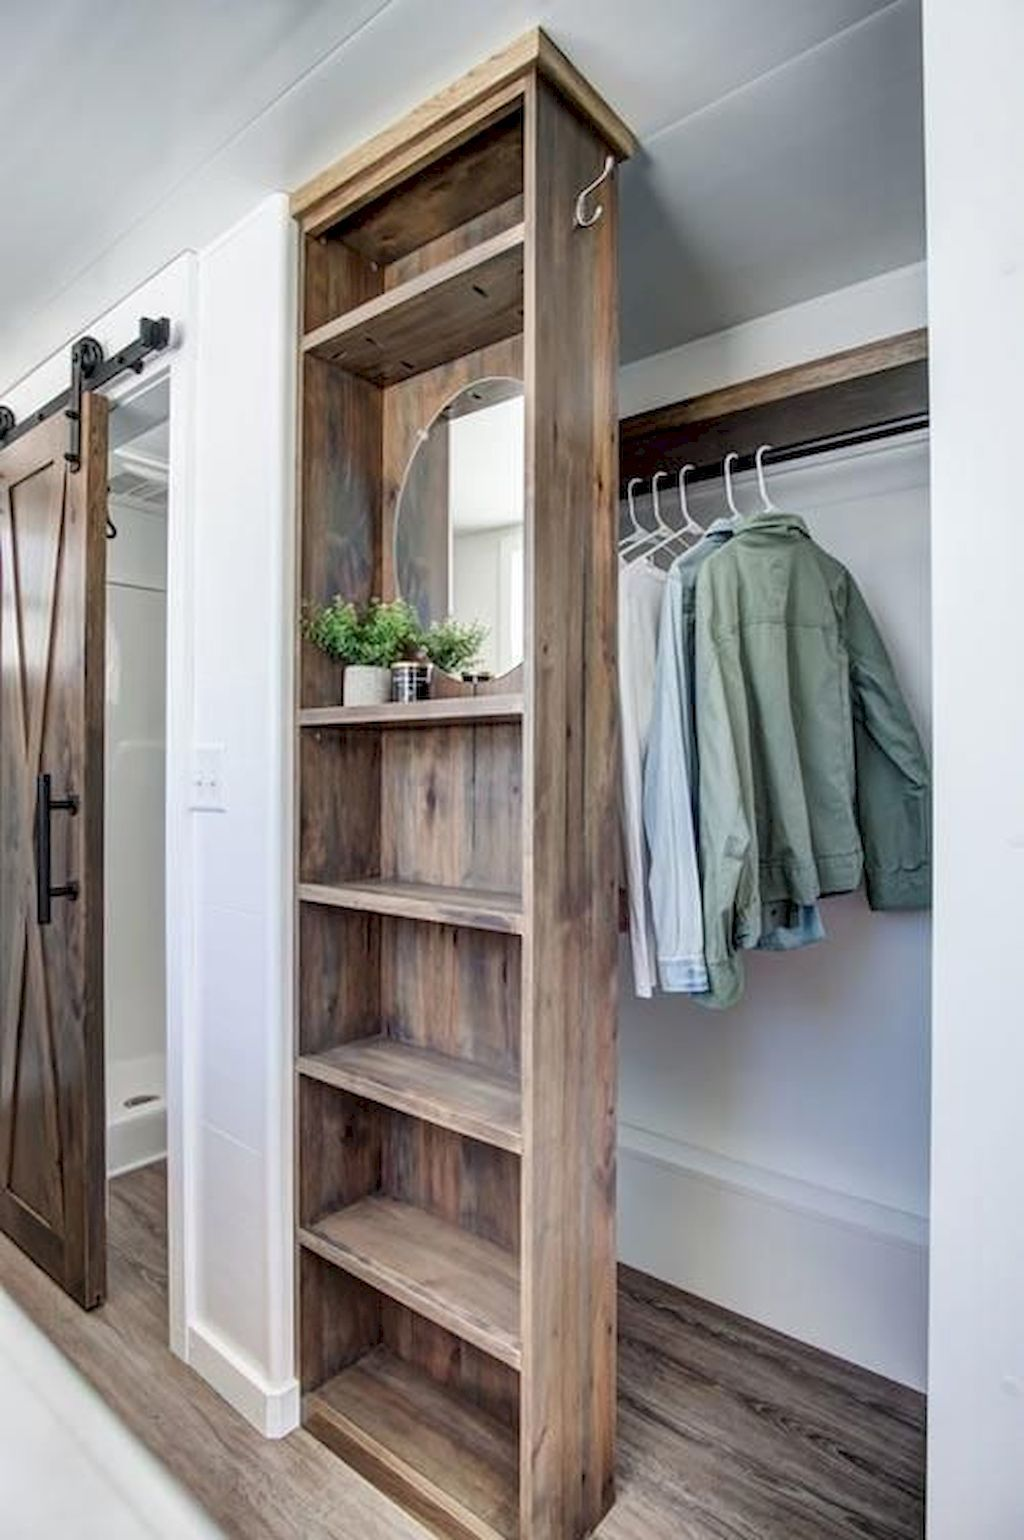 65 Space Saving Tiny House Storage Organization and Tips Ideas #tinyhousestorage